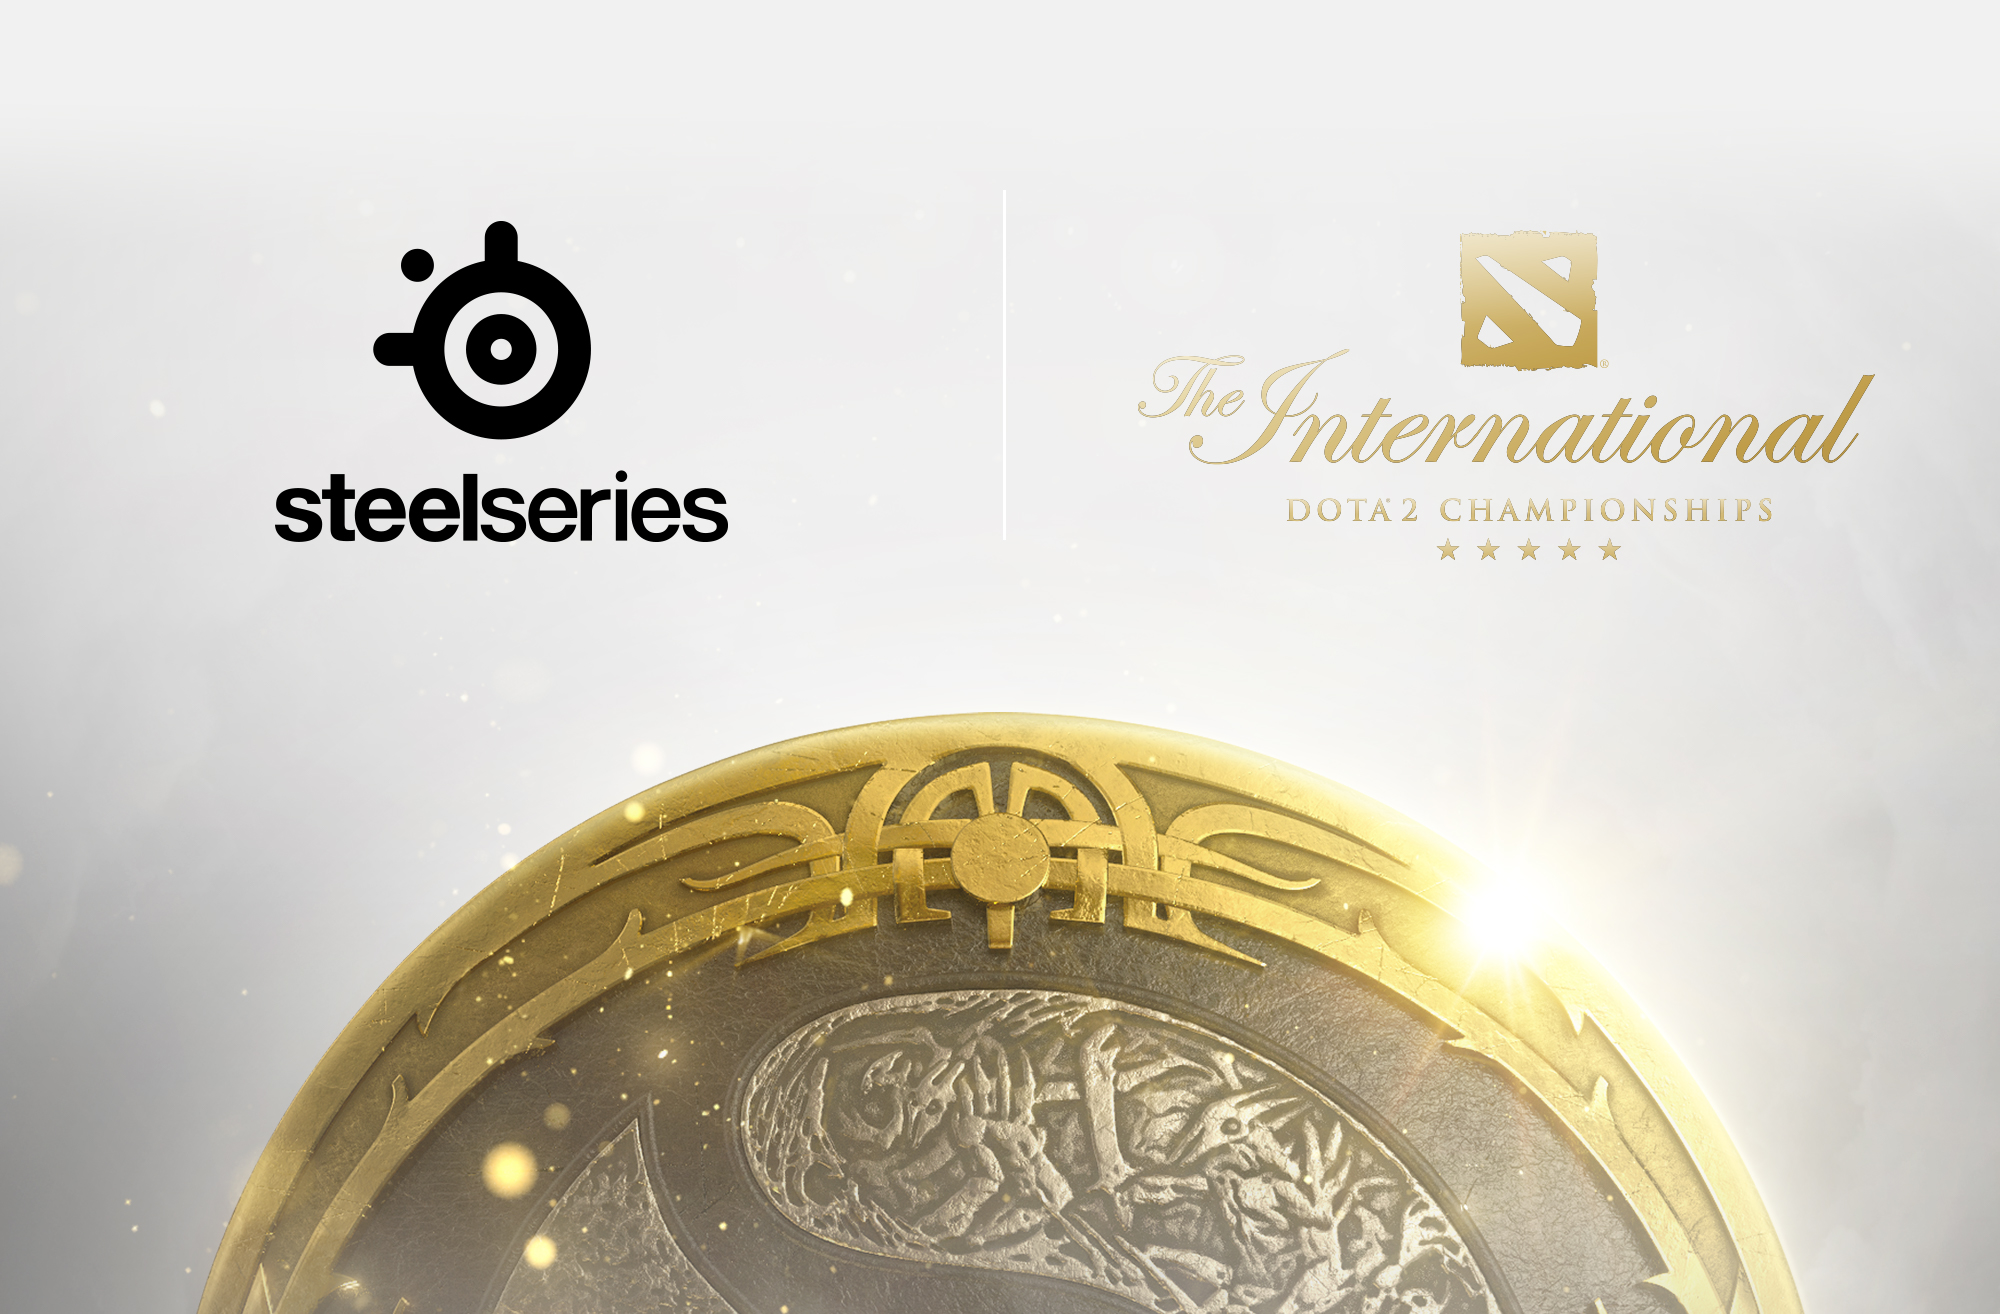 SteelSeries and The International